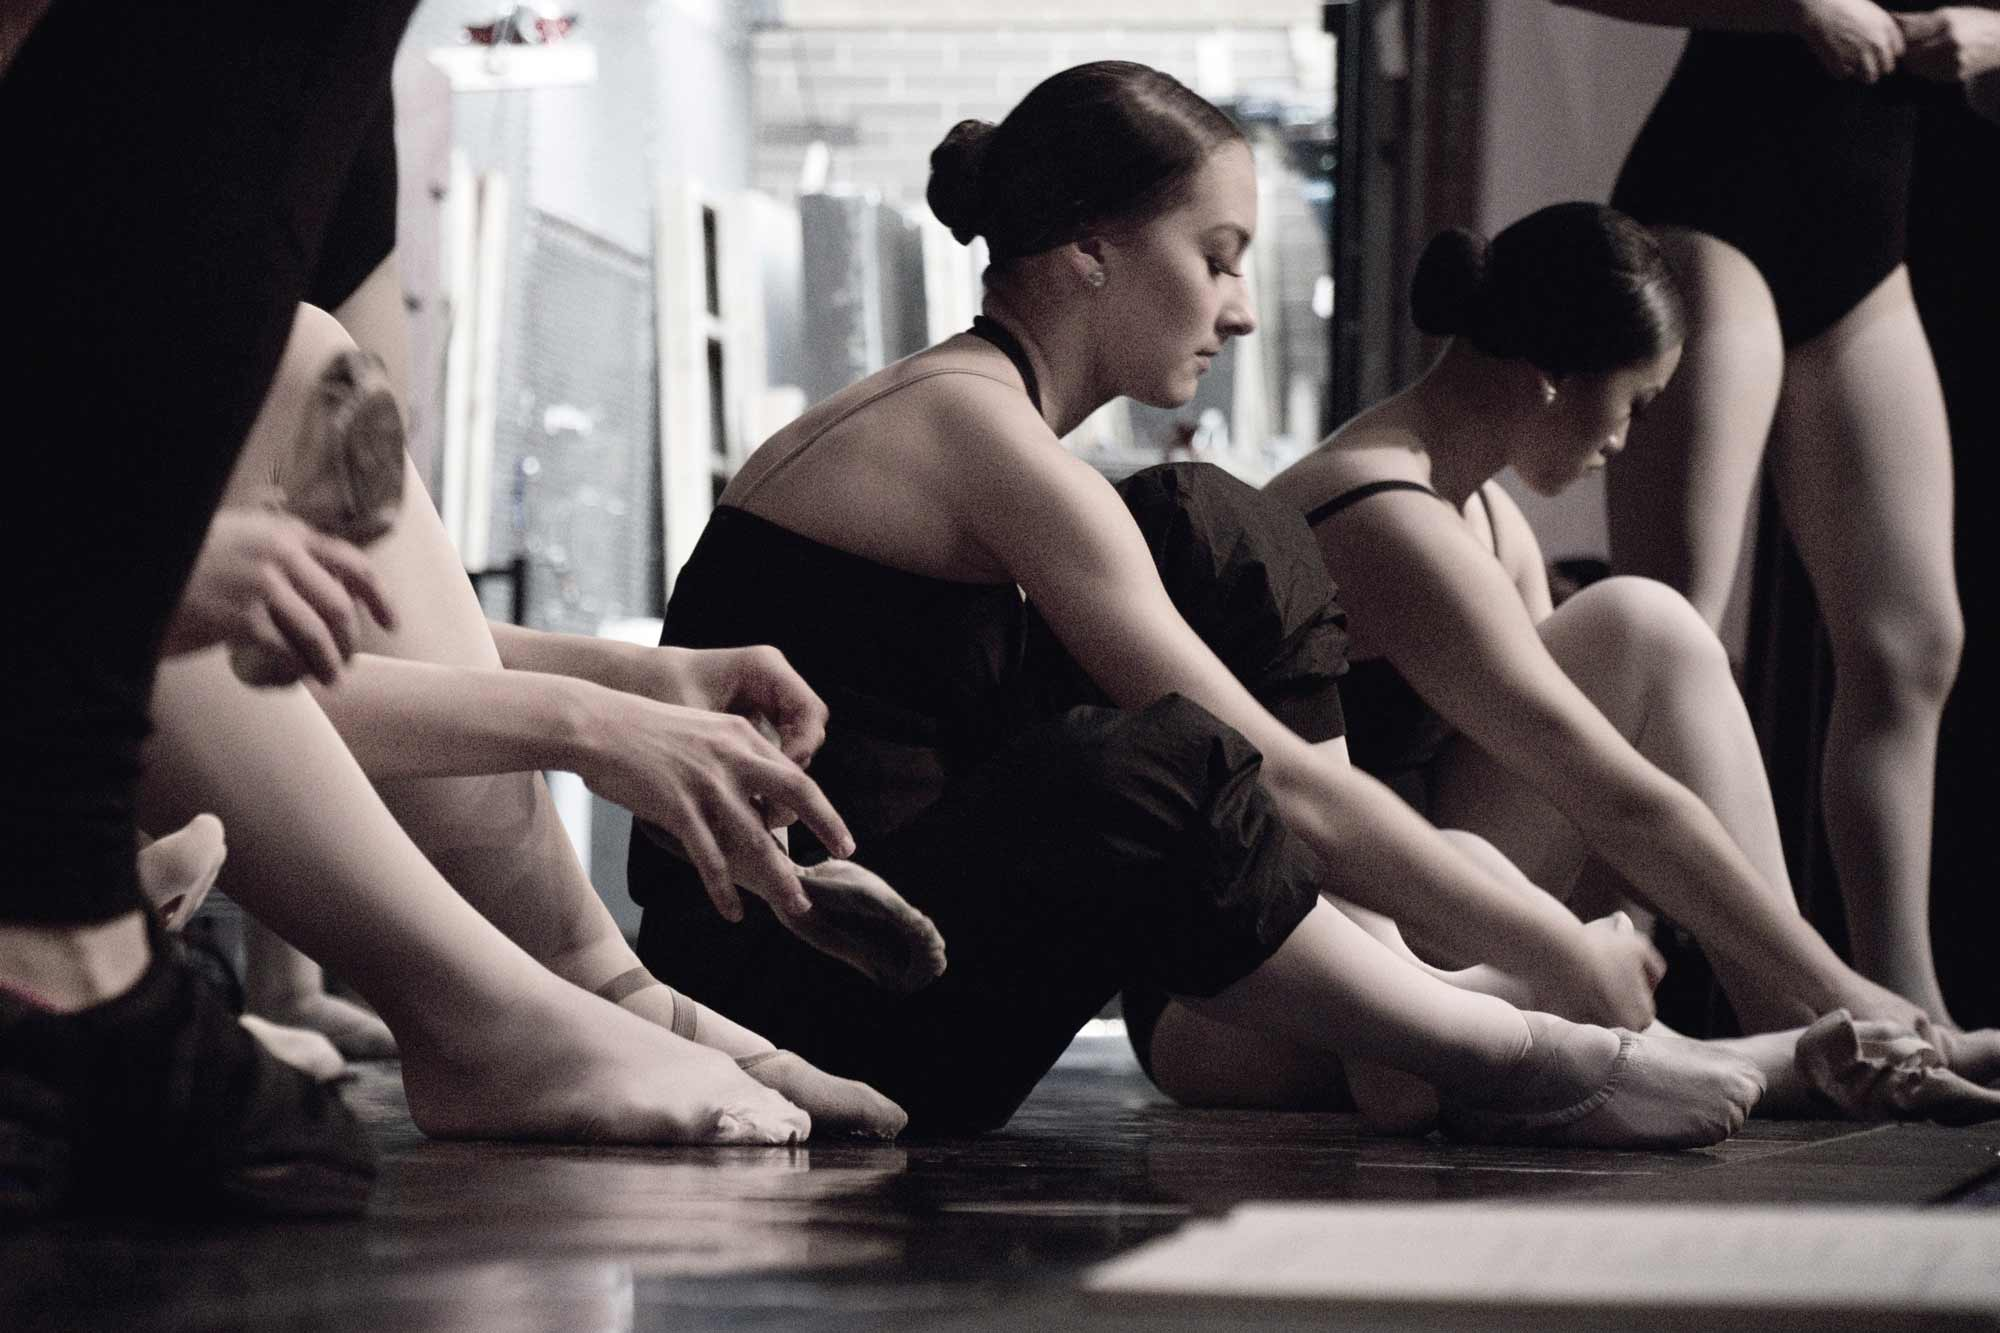 About Adult Ballet Classes at DanceWorks in Vancouver WA